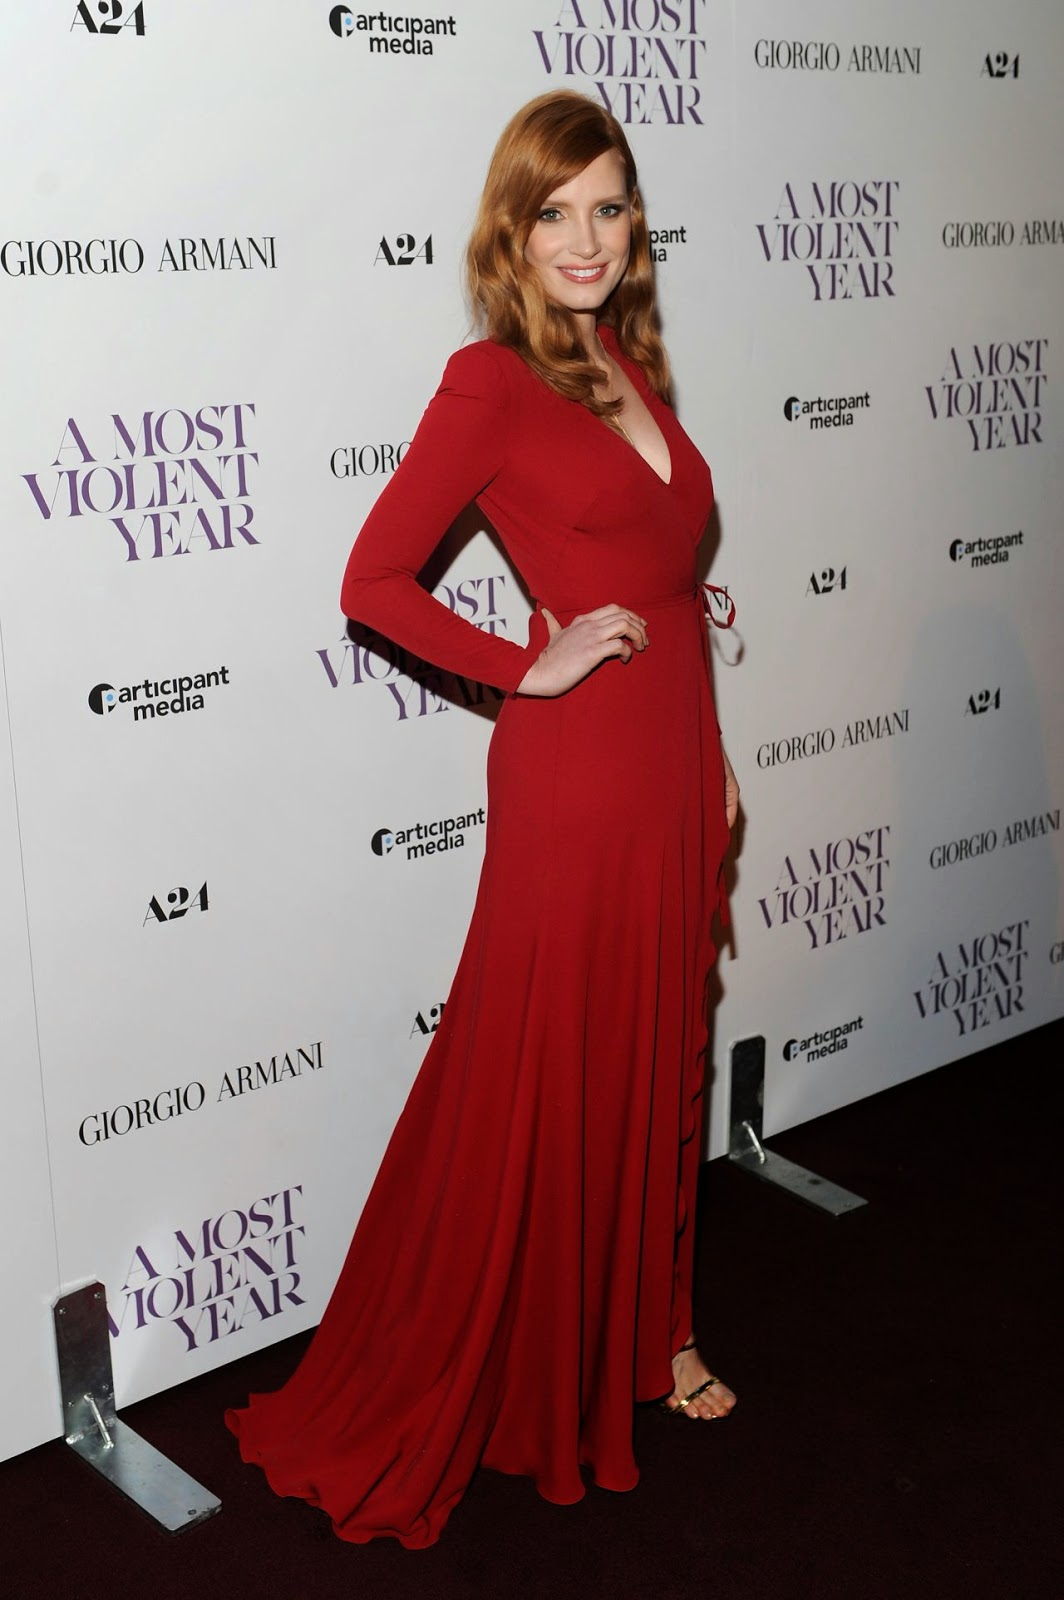 Jessica Chastain in a Giorgio Armani gown at the 'A Most Violent Year' premiere in New York City